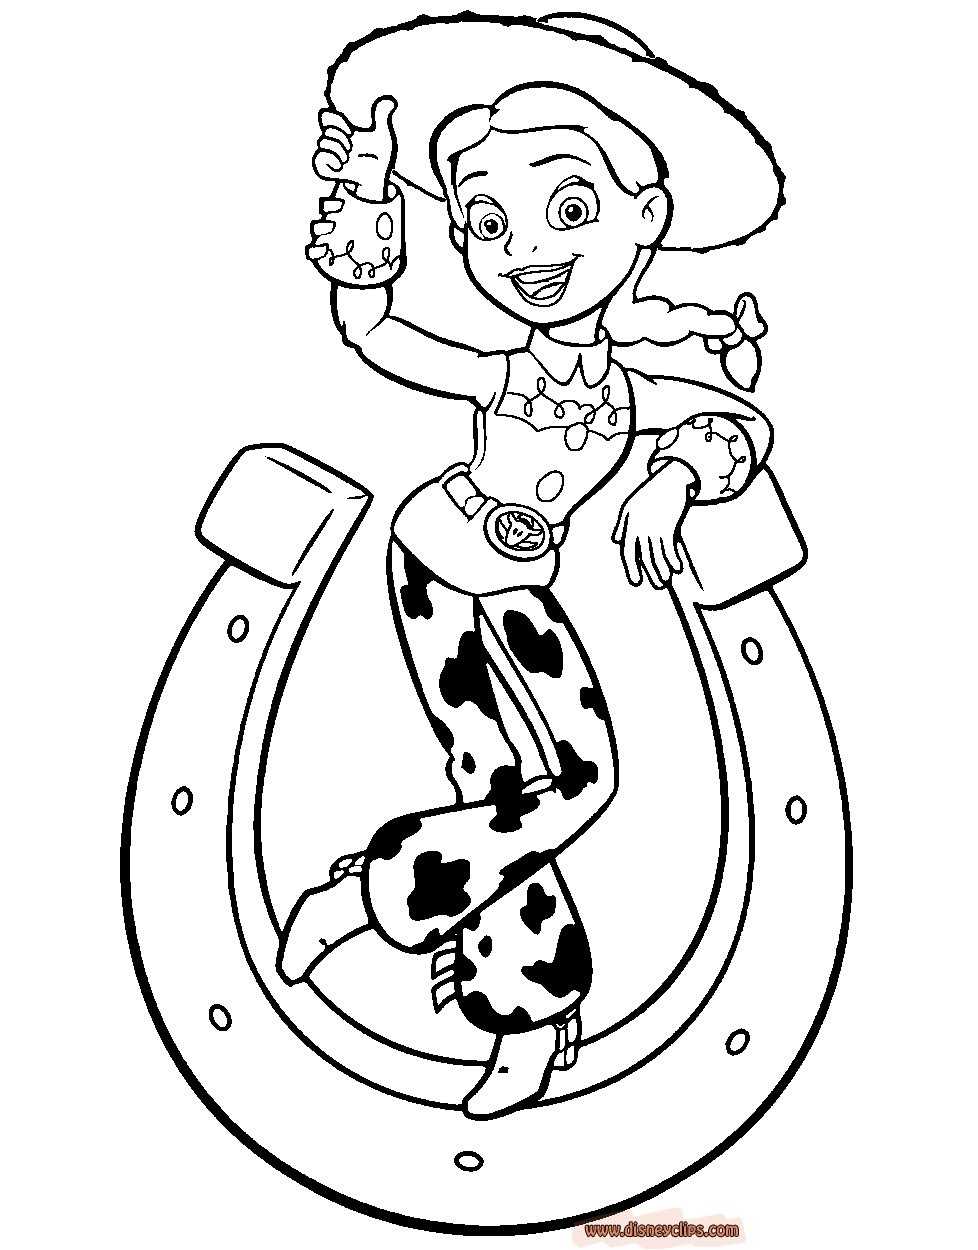 978x1250 toy story jessie coloring pages unique toy story drawing